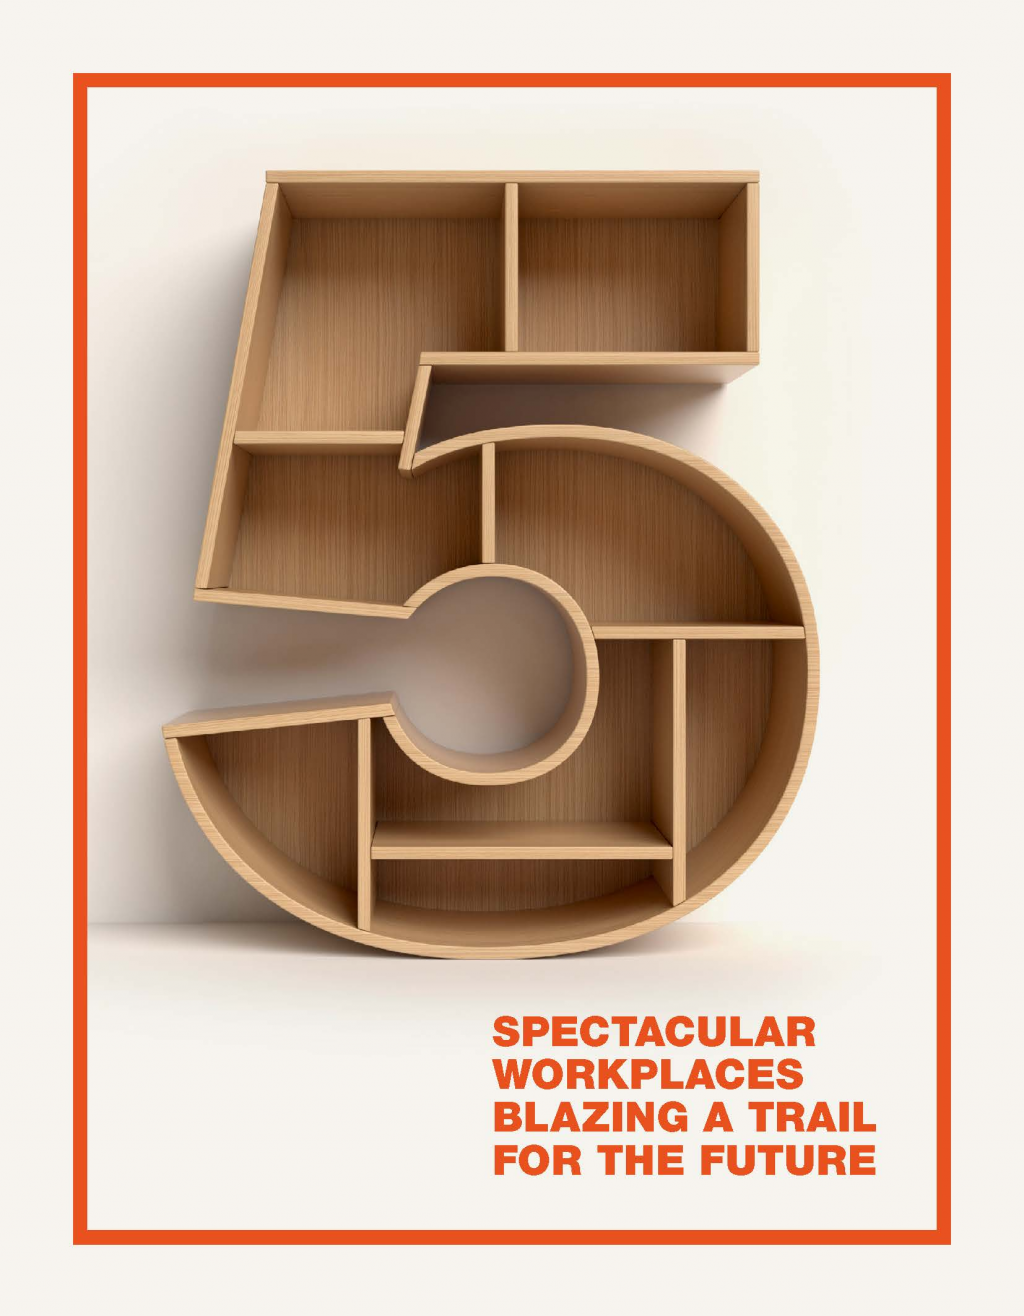 Read the Article - 5 Spectacular Workplaces Blazing A Trail For The Future